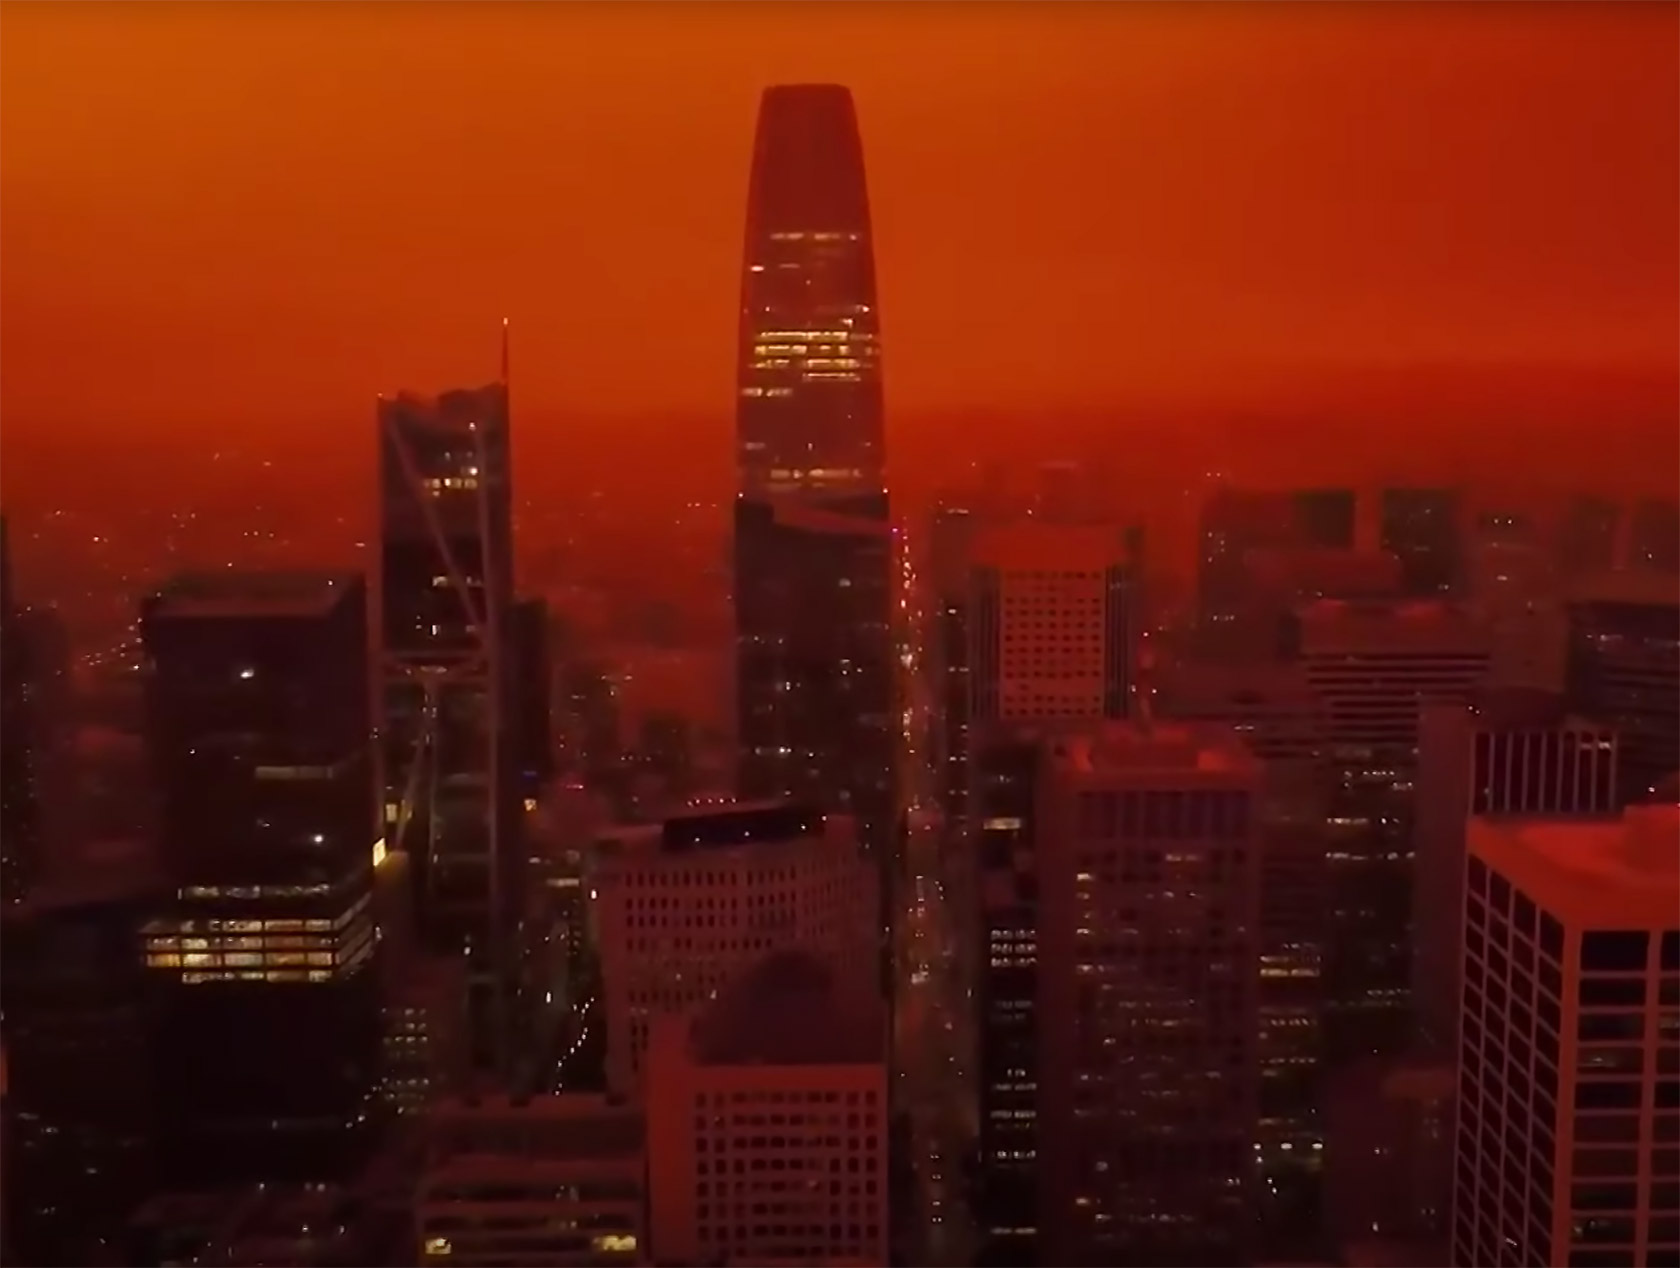 San Francisco Blade Runner 2049 Sky Orange